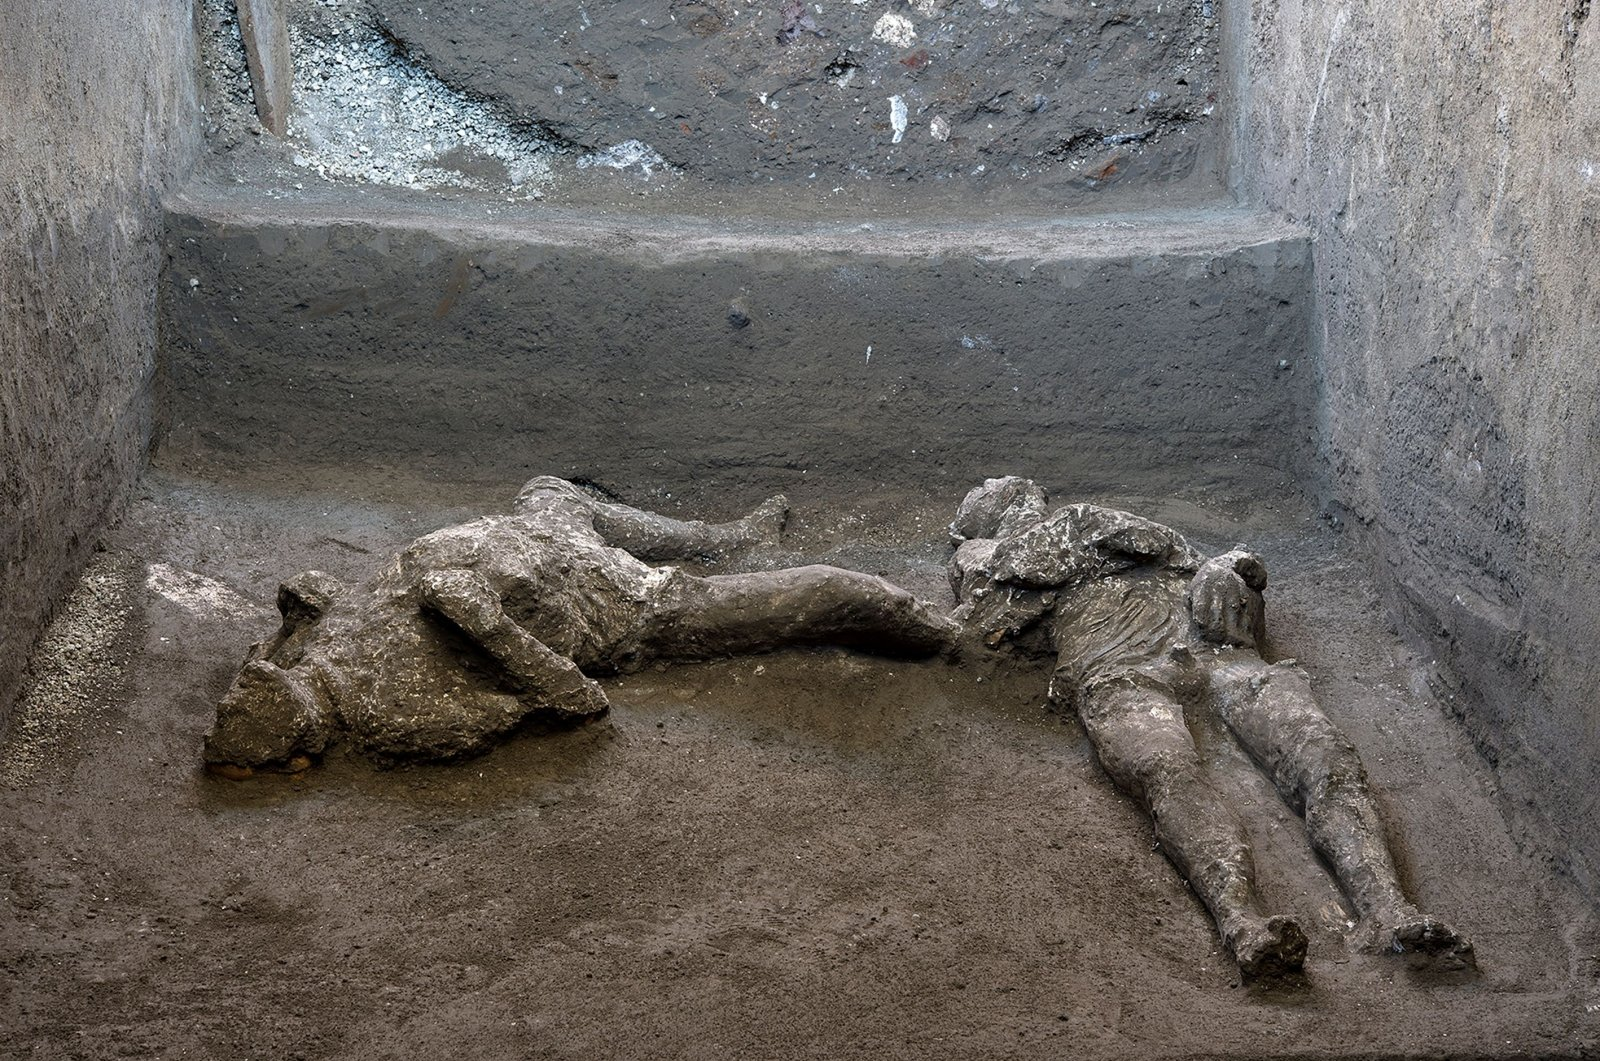 Remains of two men who died in the volcanic eruption that destroyed the ancient Roman city of Pompeii in 79 A.D. are discovered in a dig carried out during the coronavirus pandemic in Pompeii, Italy on Nov. 18, 2020. (Reuters Photo)